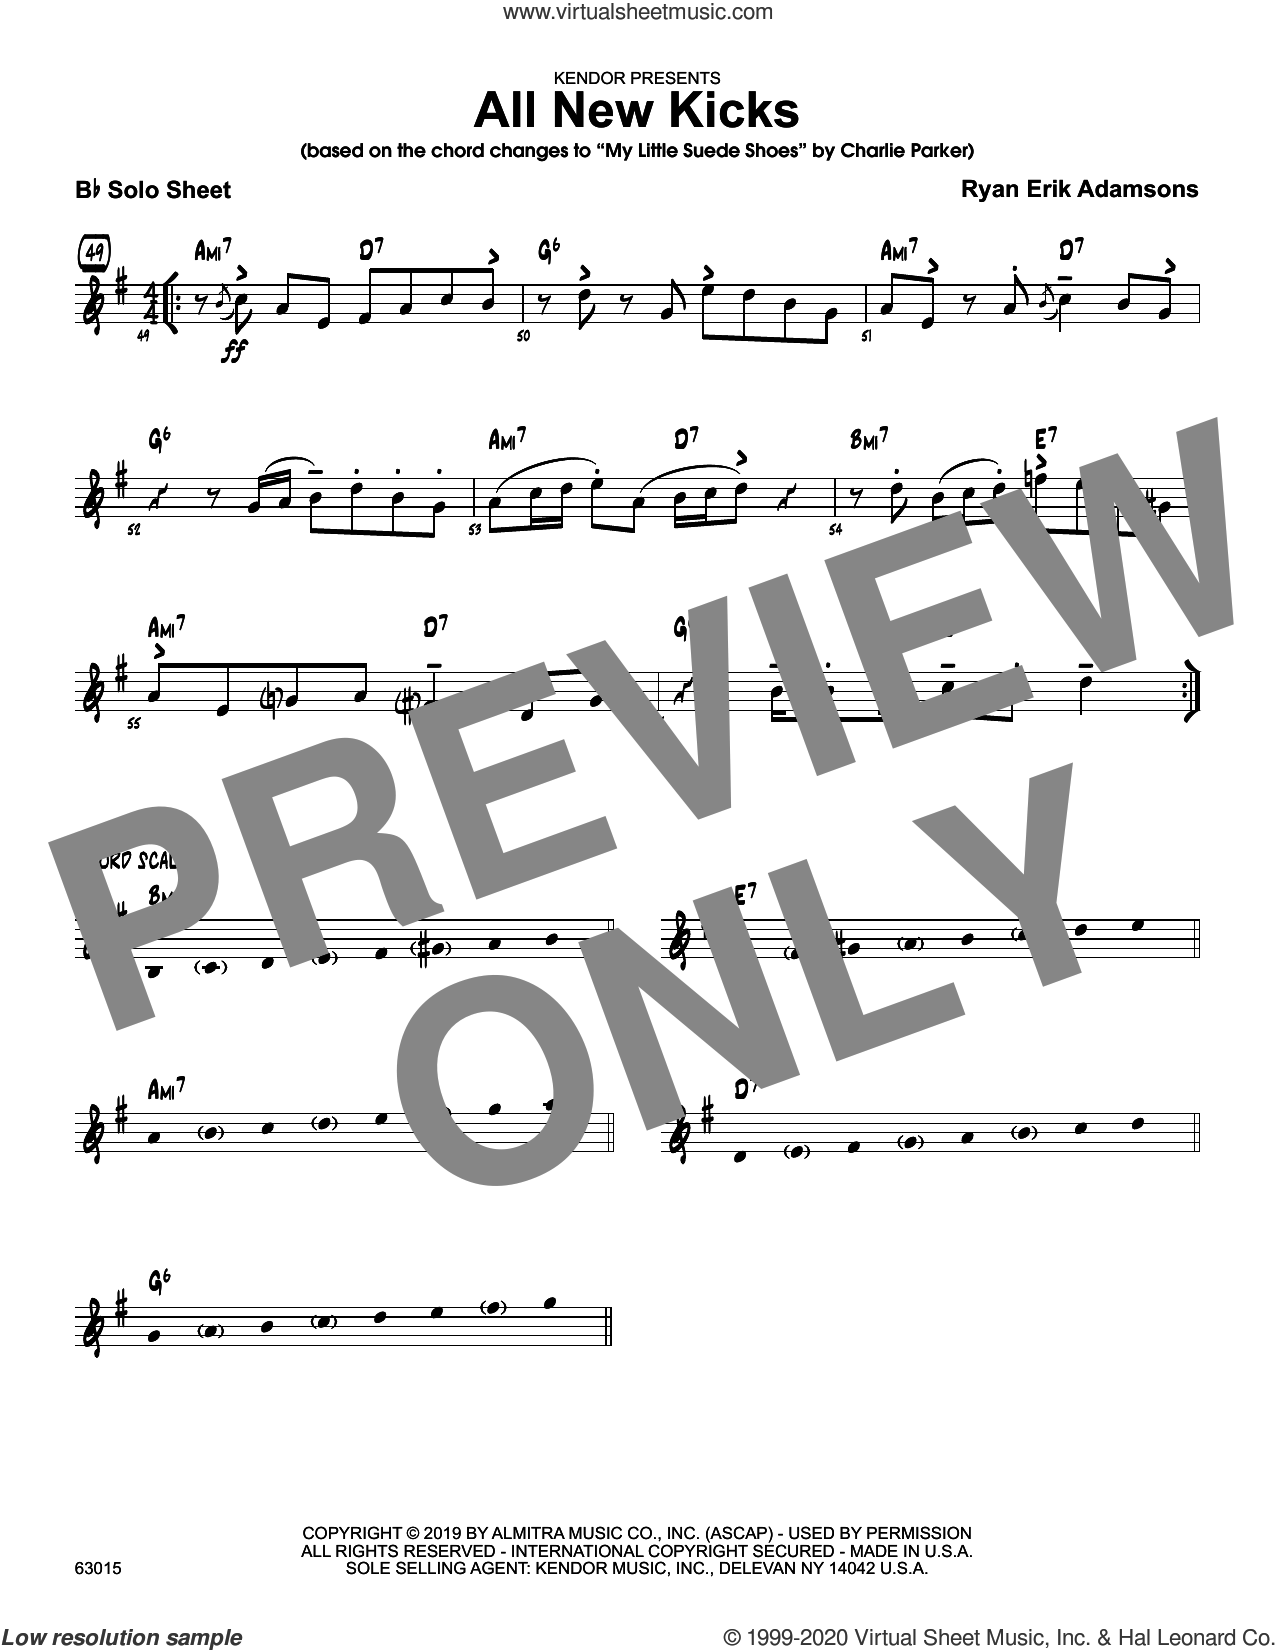 All New Kicks sheet music for jazz band (solo sheet for f instruments) by Ryan Erik Adamsons, intermediate skill level